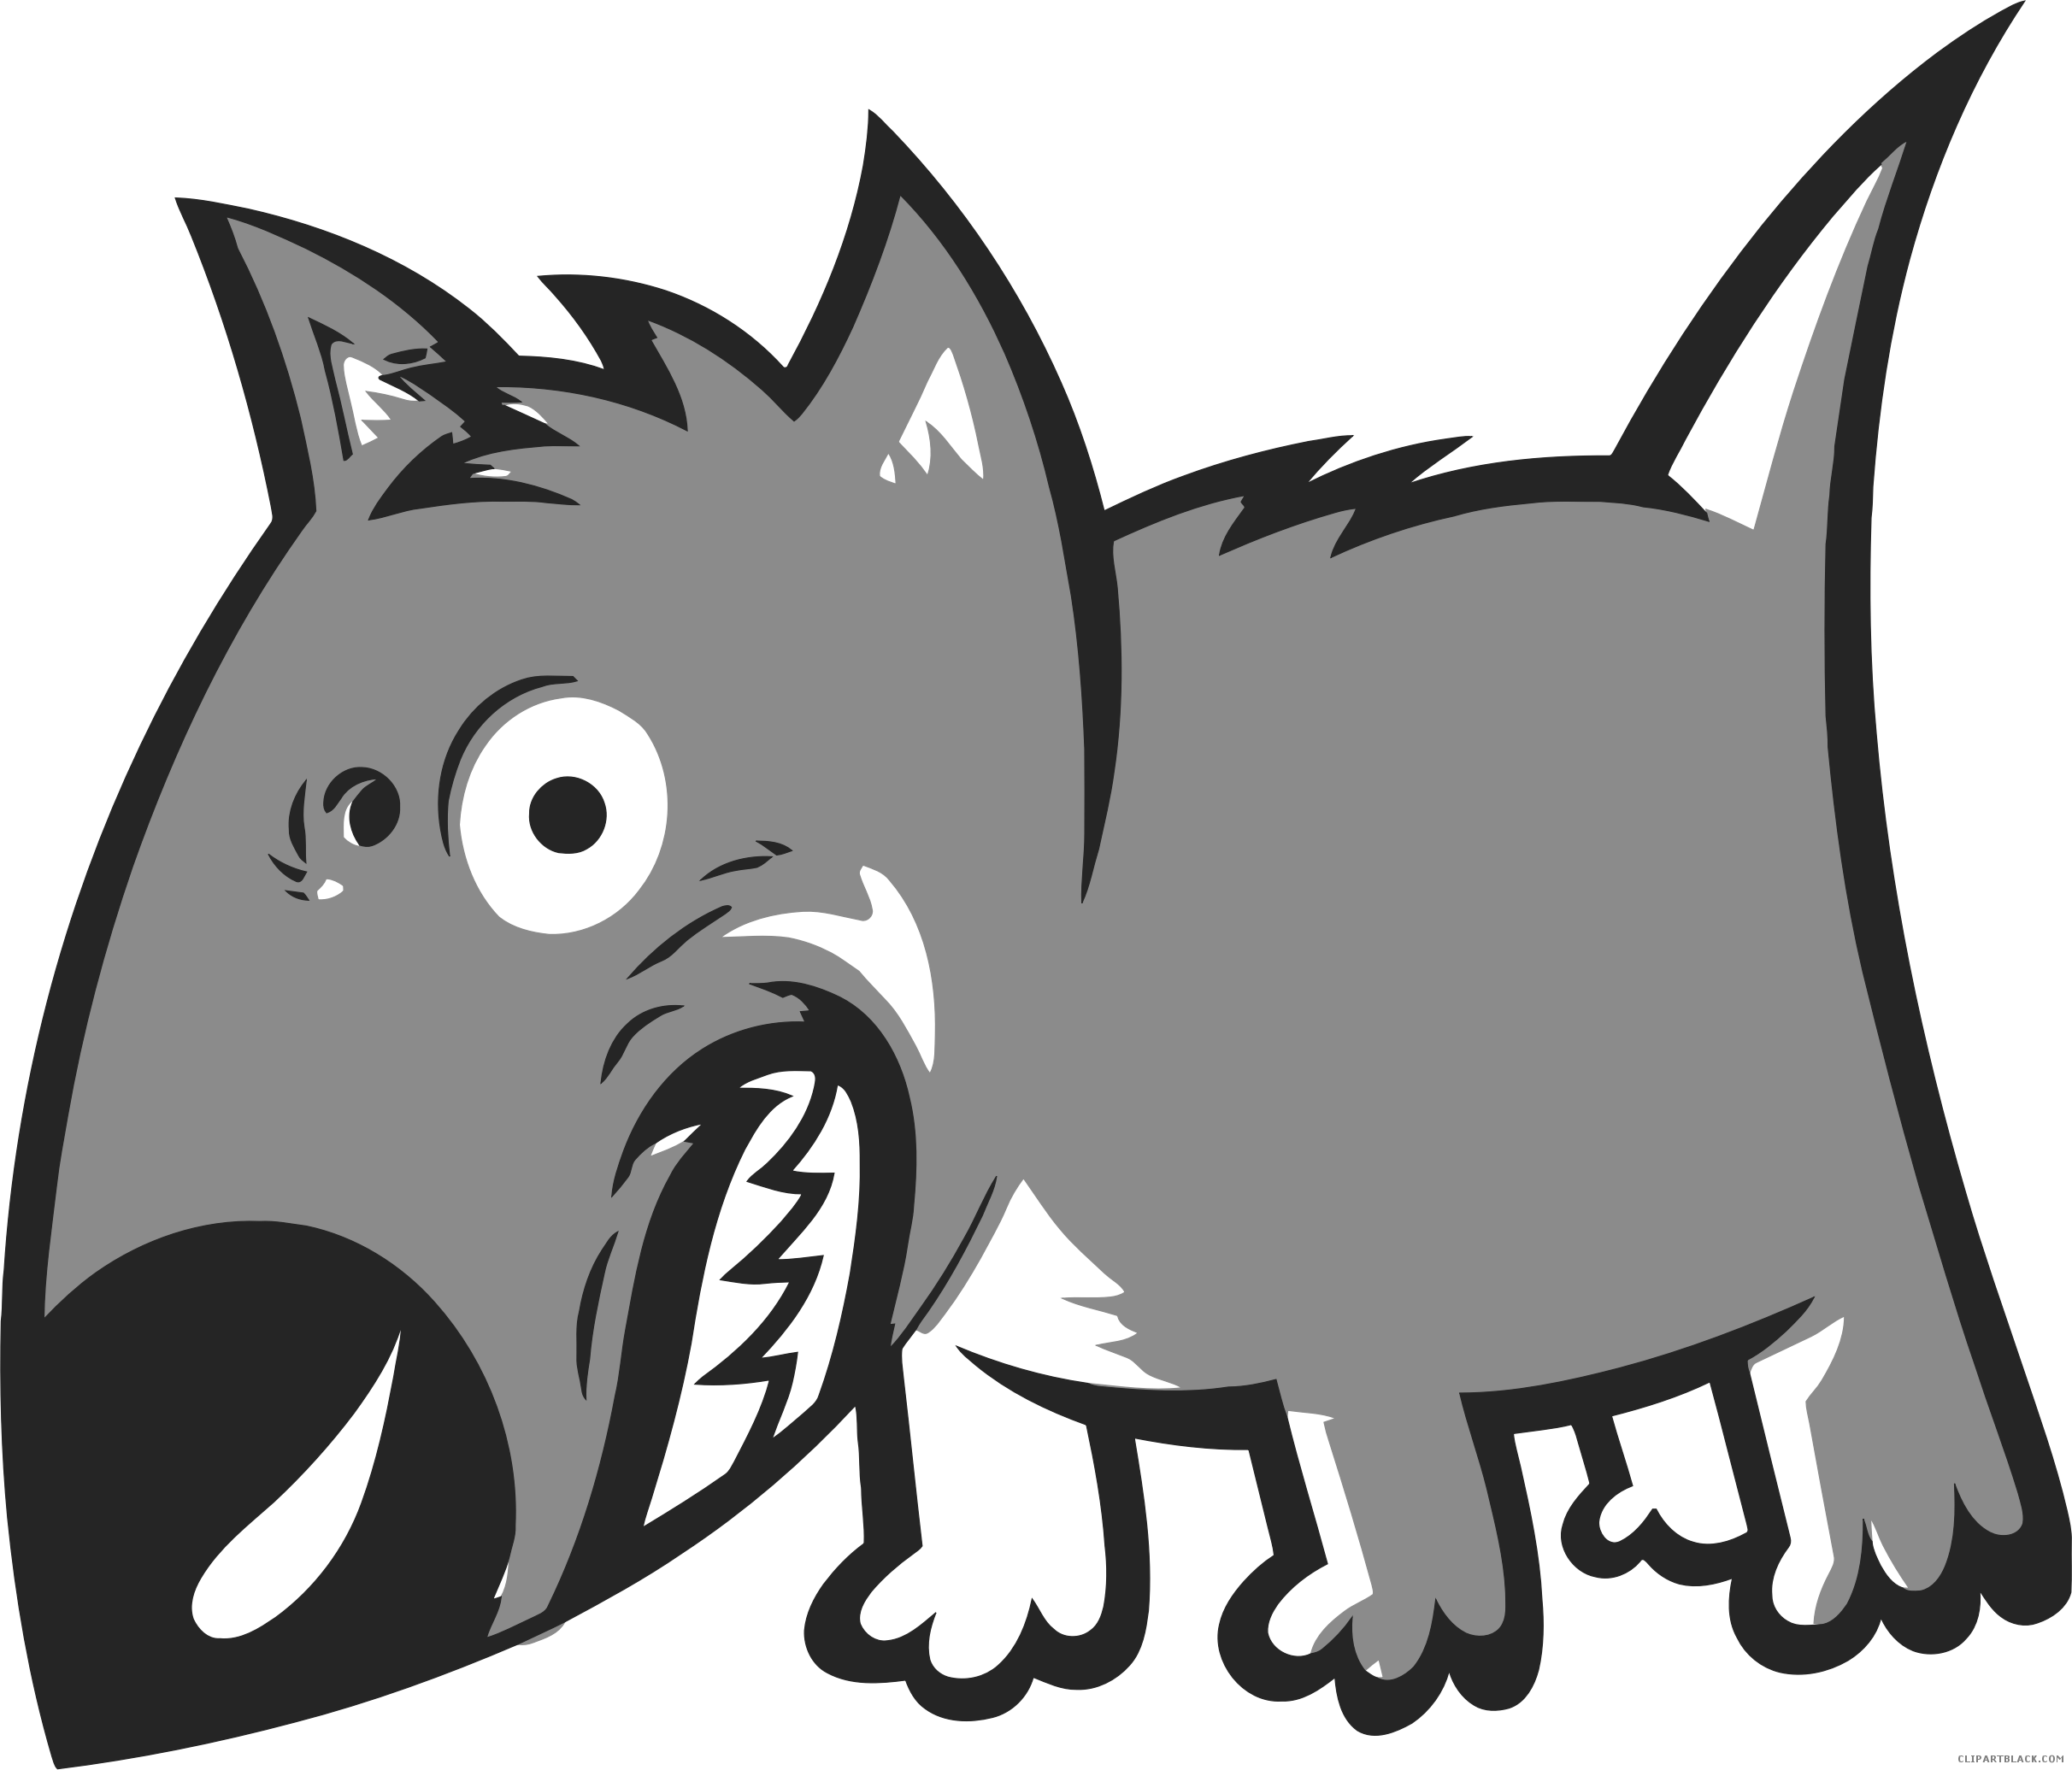 Angry dog clipart vector download Angry Dog Clipart - ClipartBlack.com vector download